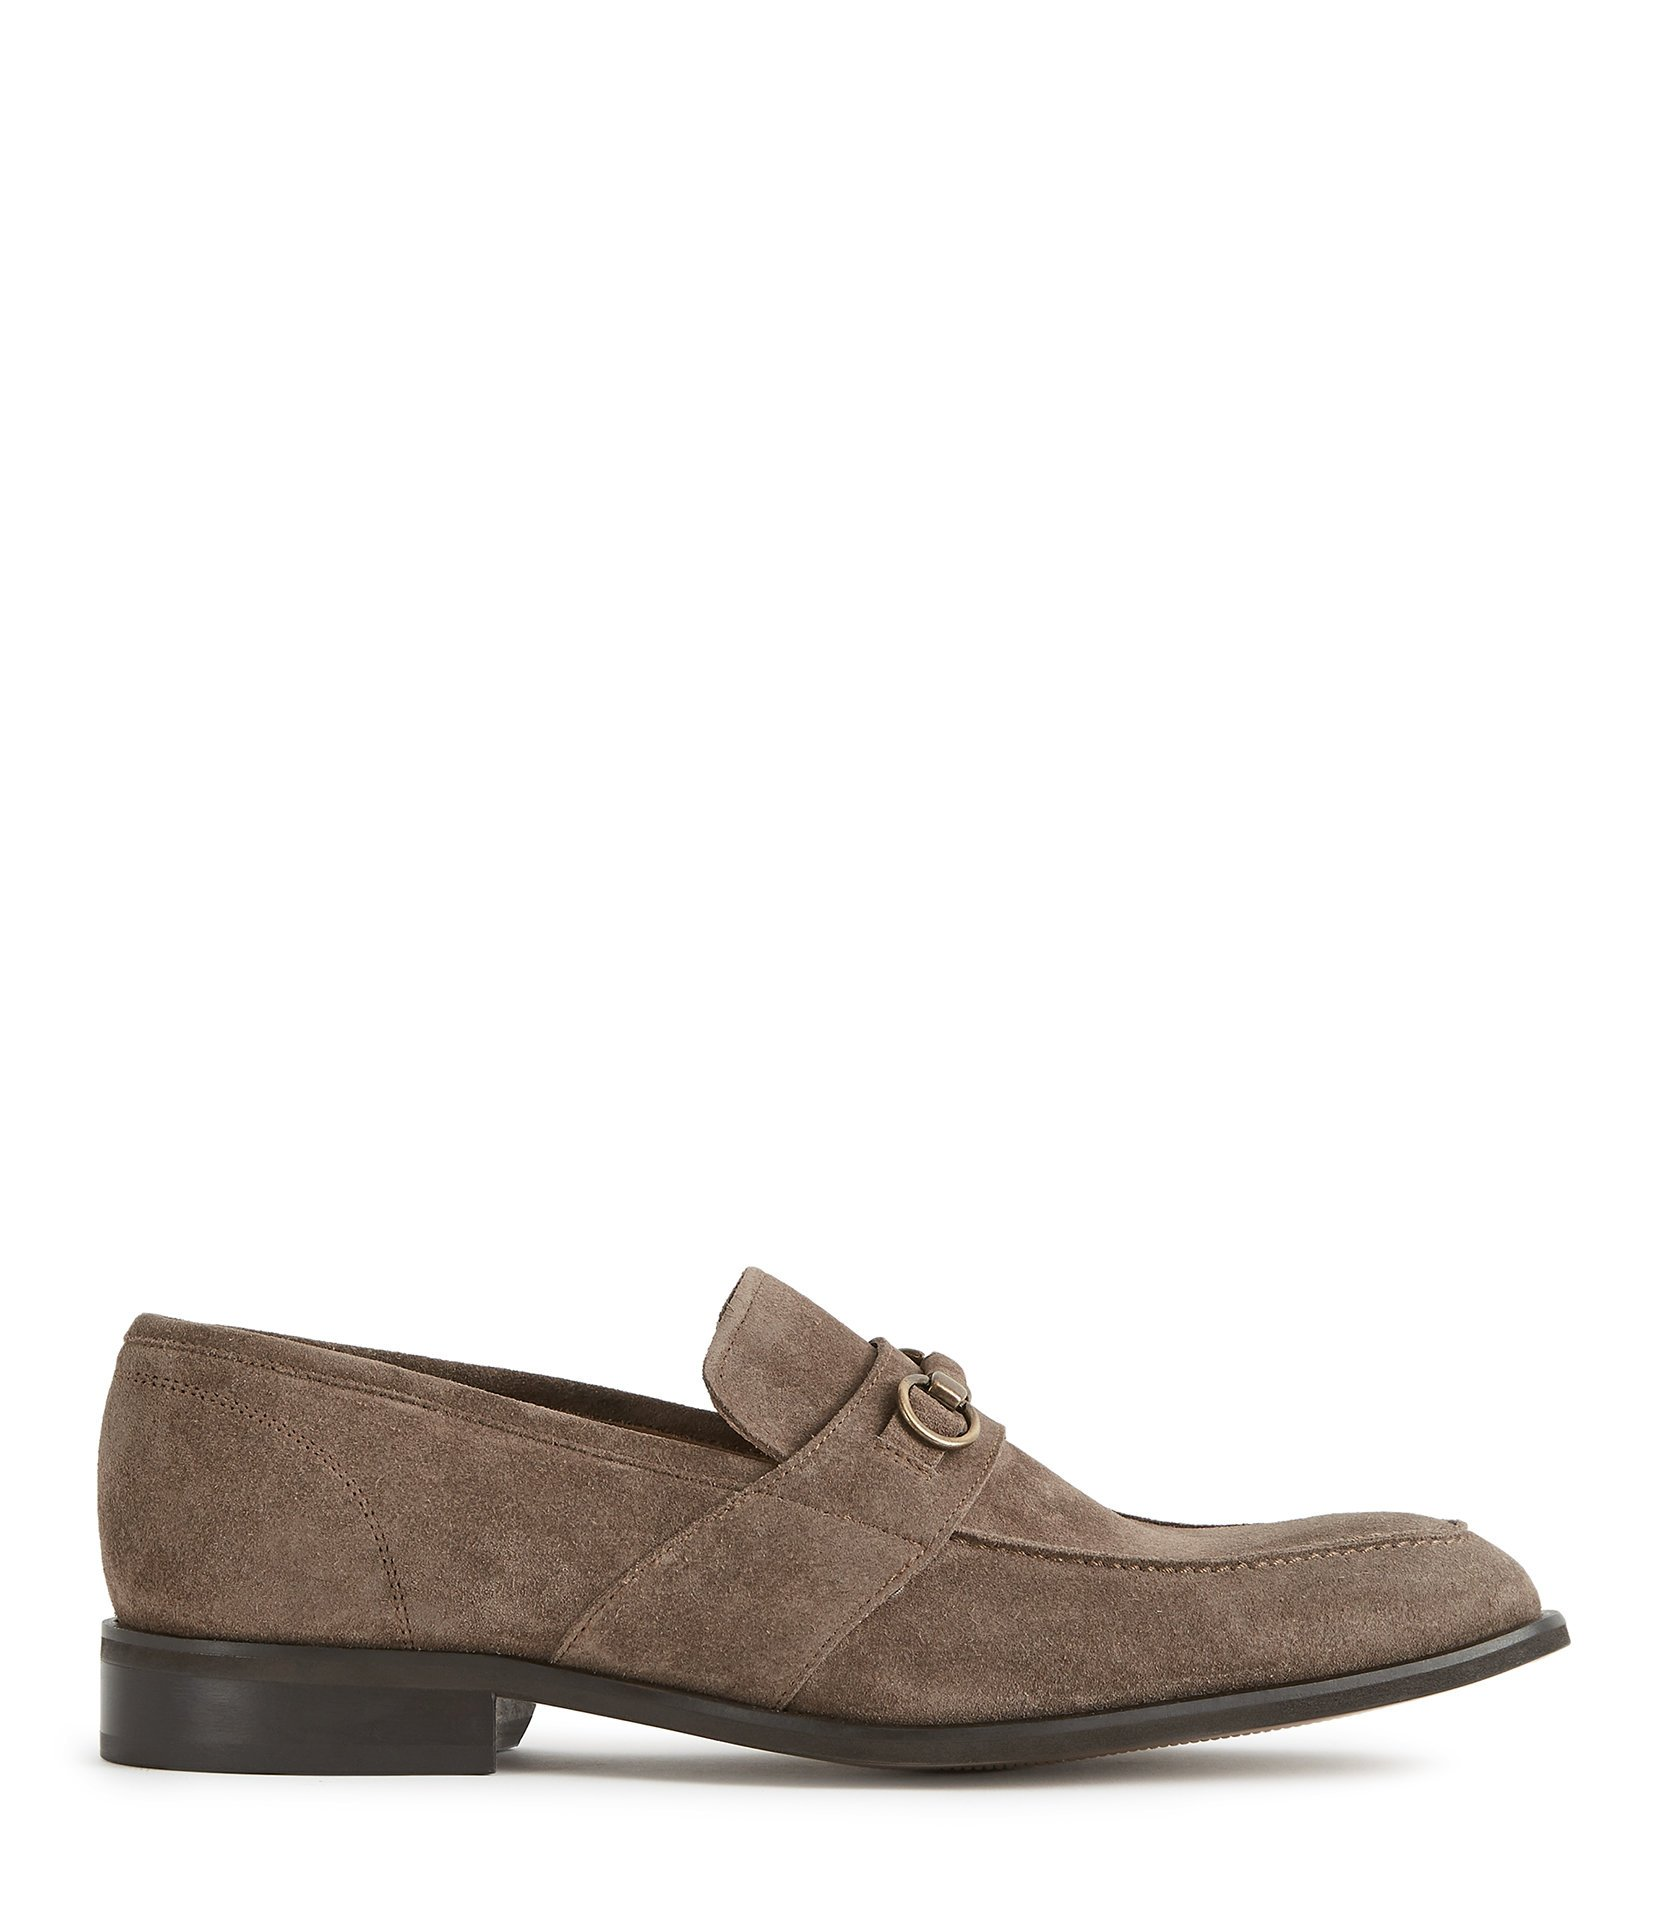 Reiss Taupe Simon Suede Horsebit Buckle Loafers